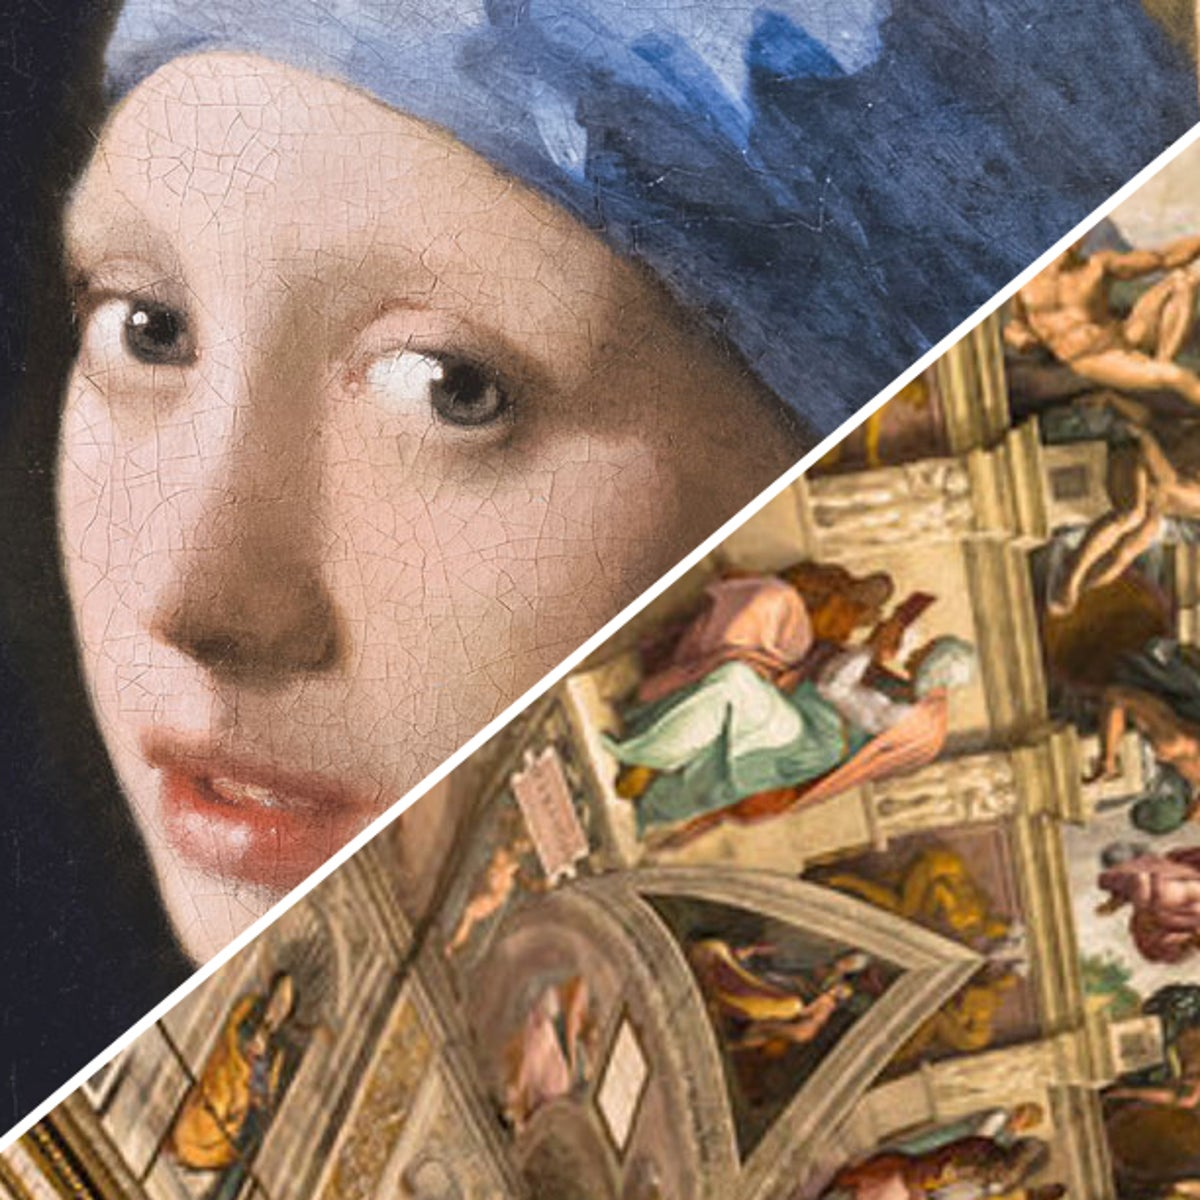 From left to right: Vermeer's 'Girl with a Pearl Earrin', the Sistine Chapel, and a painting by Yoo Youngkuk.